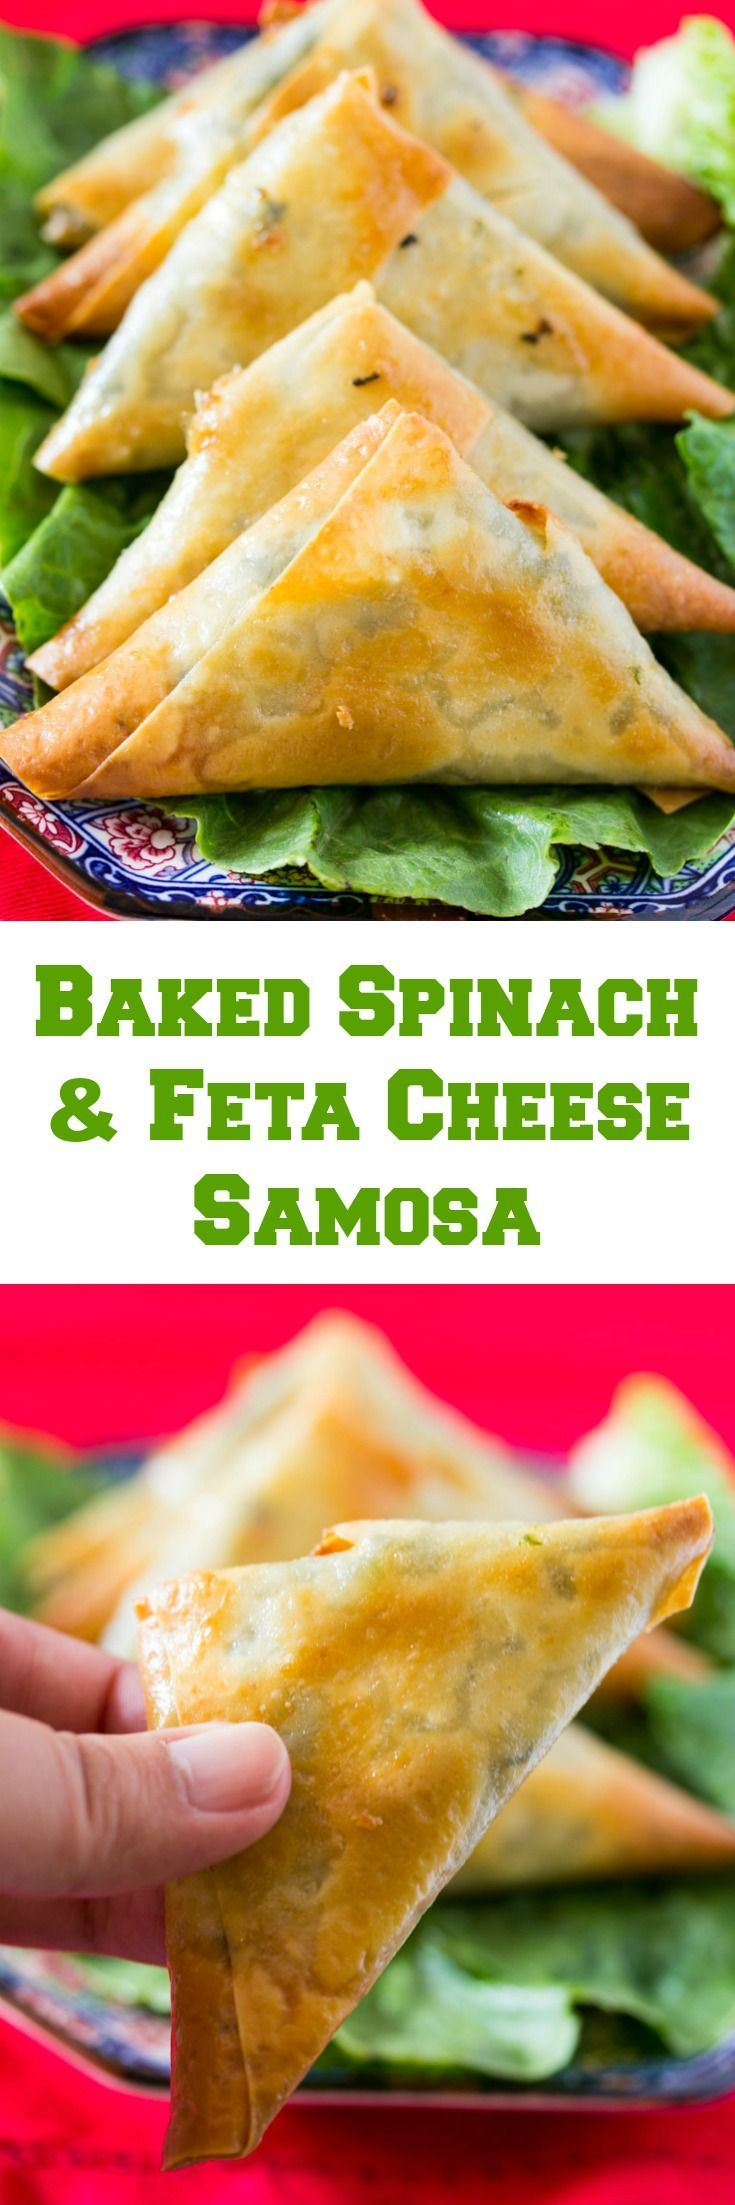 A collage of baked spinach and feta cheese filled samosa